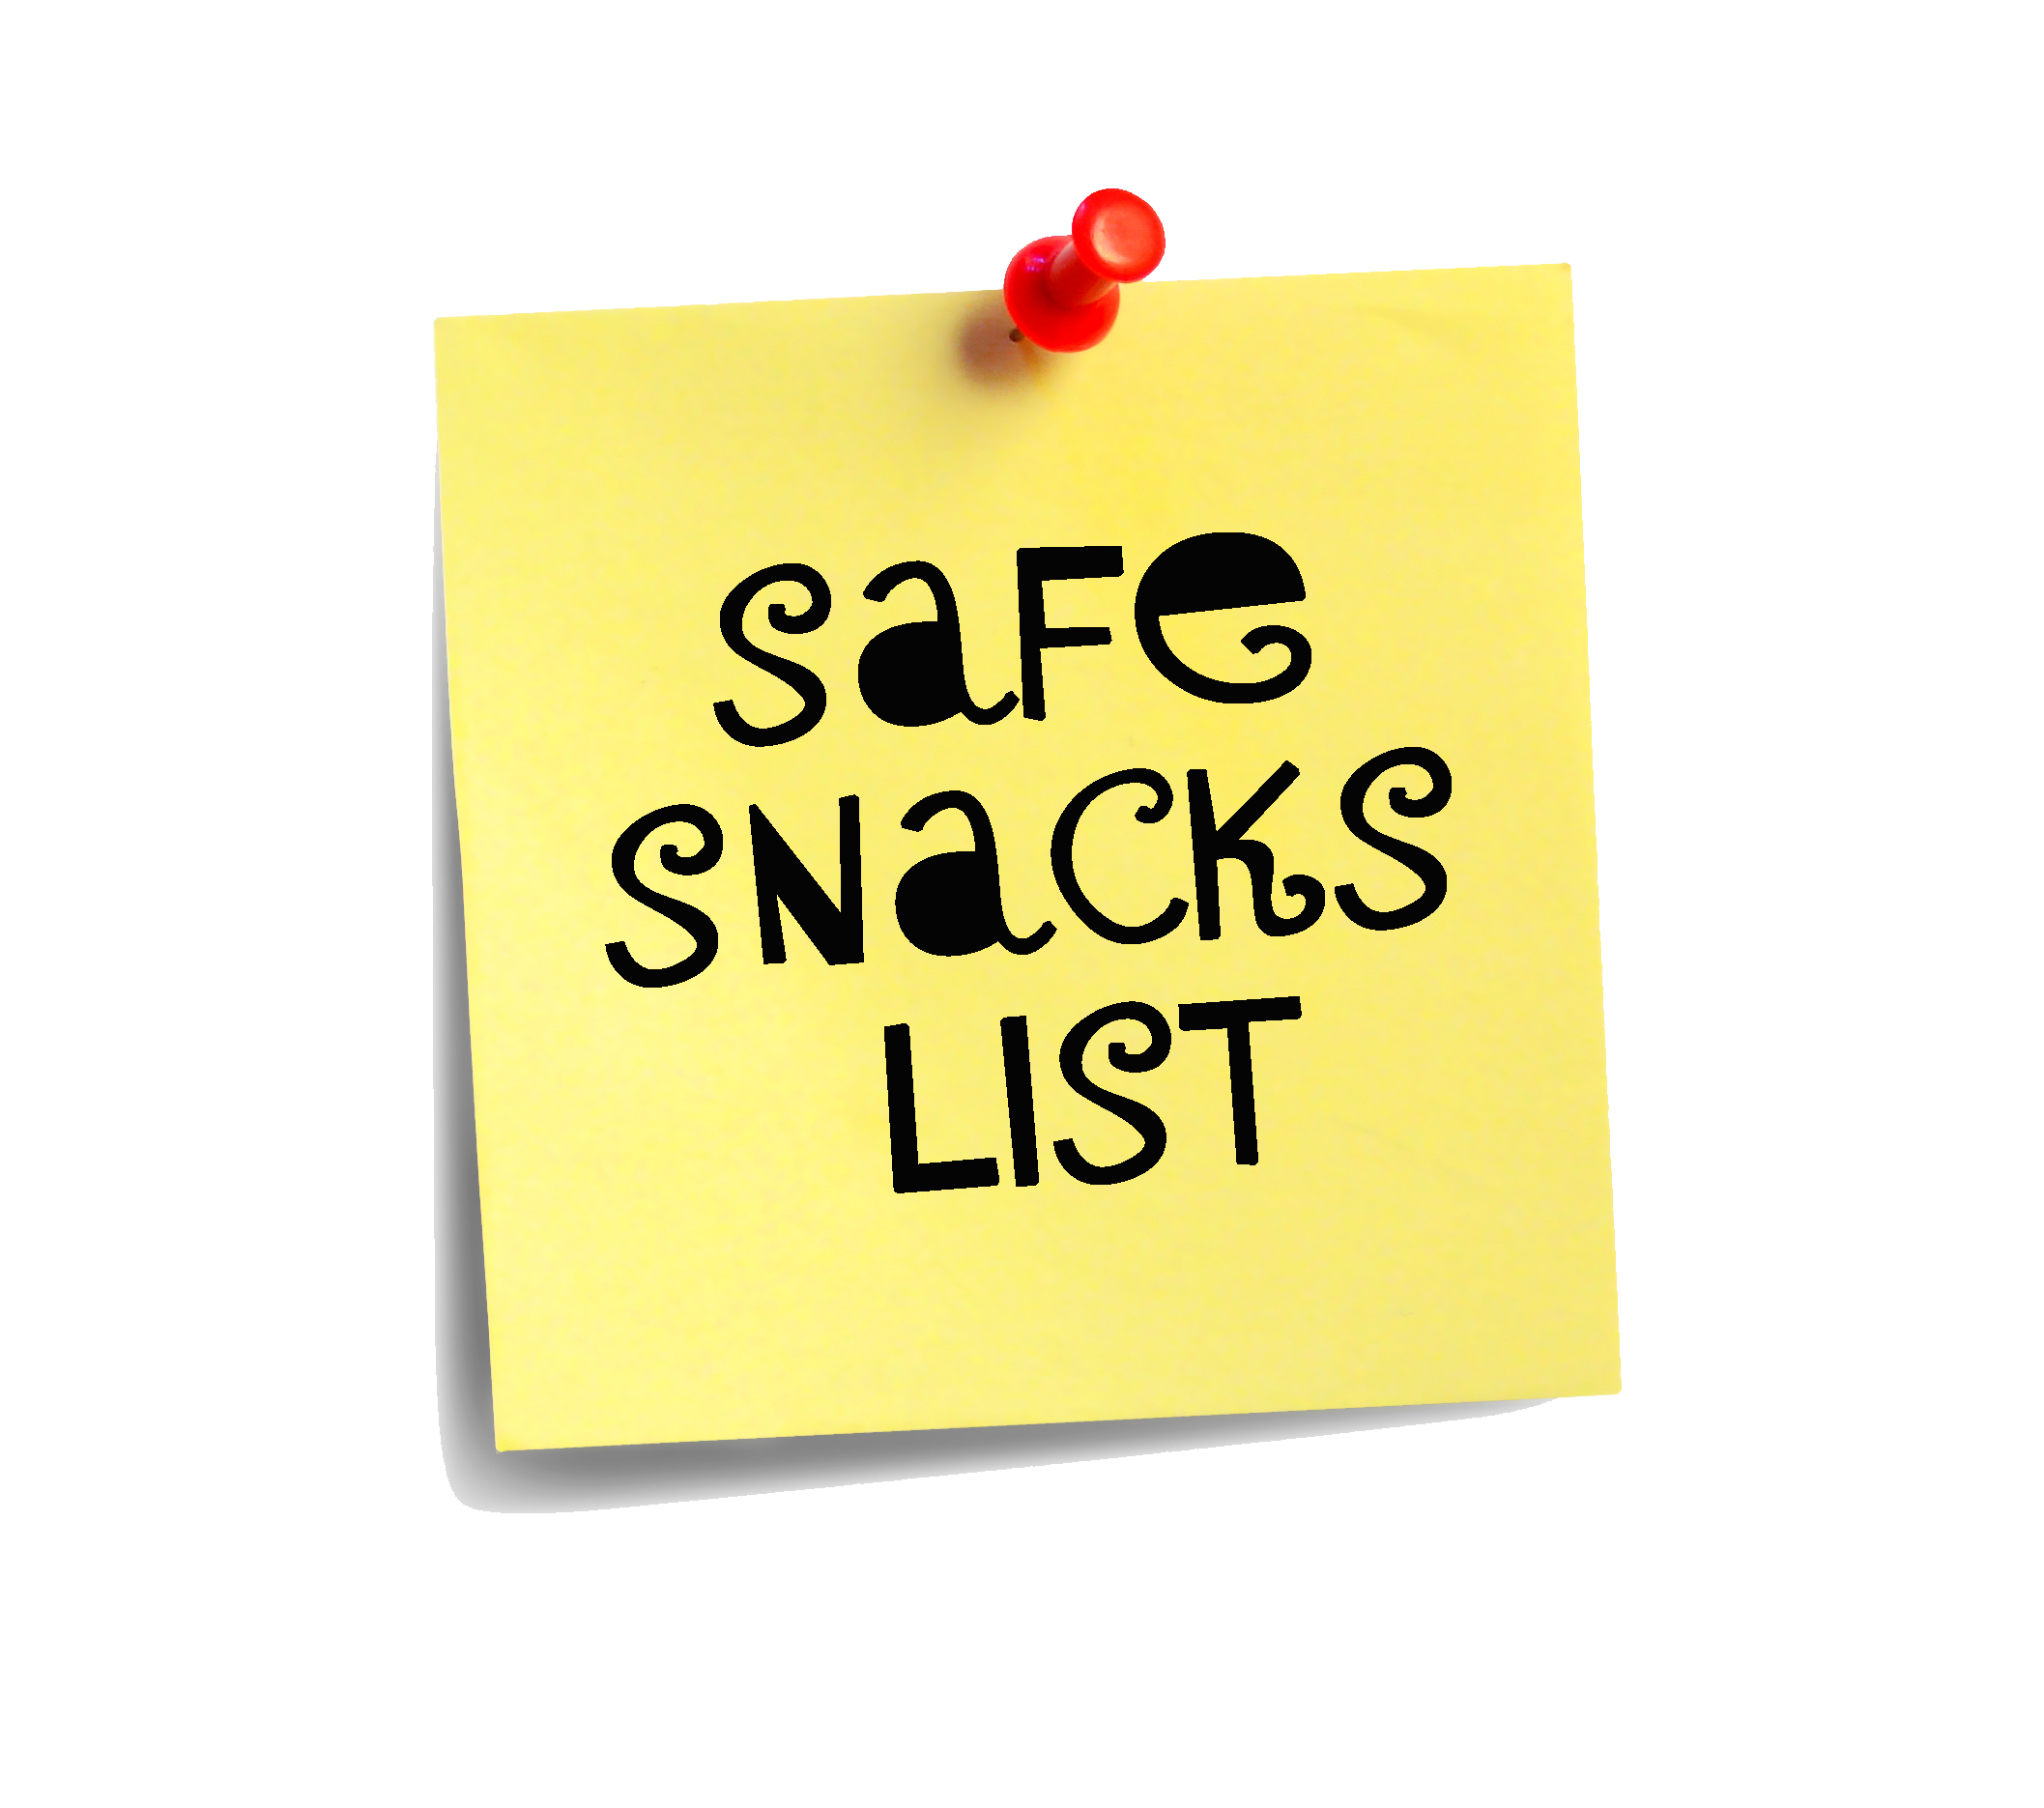 Post it note safe snacks